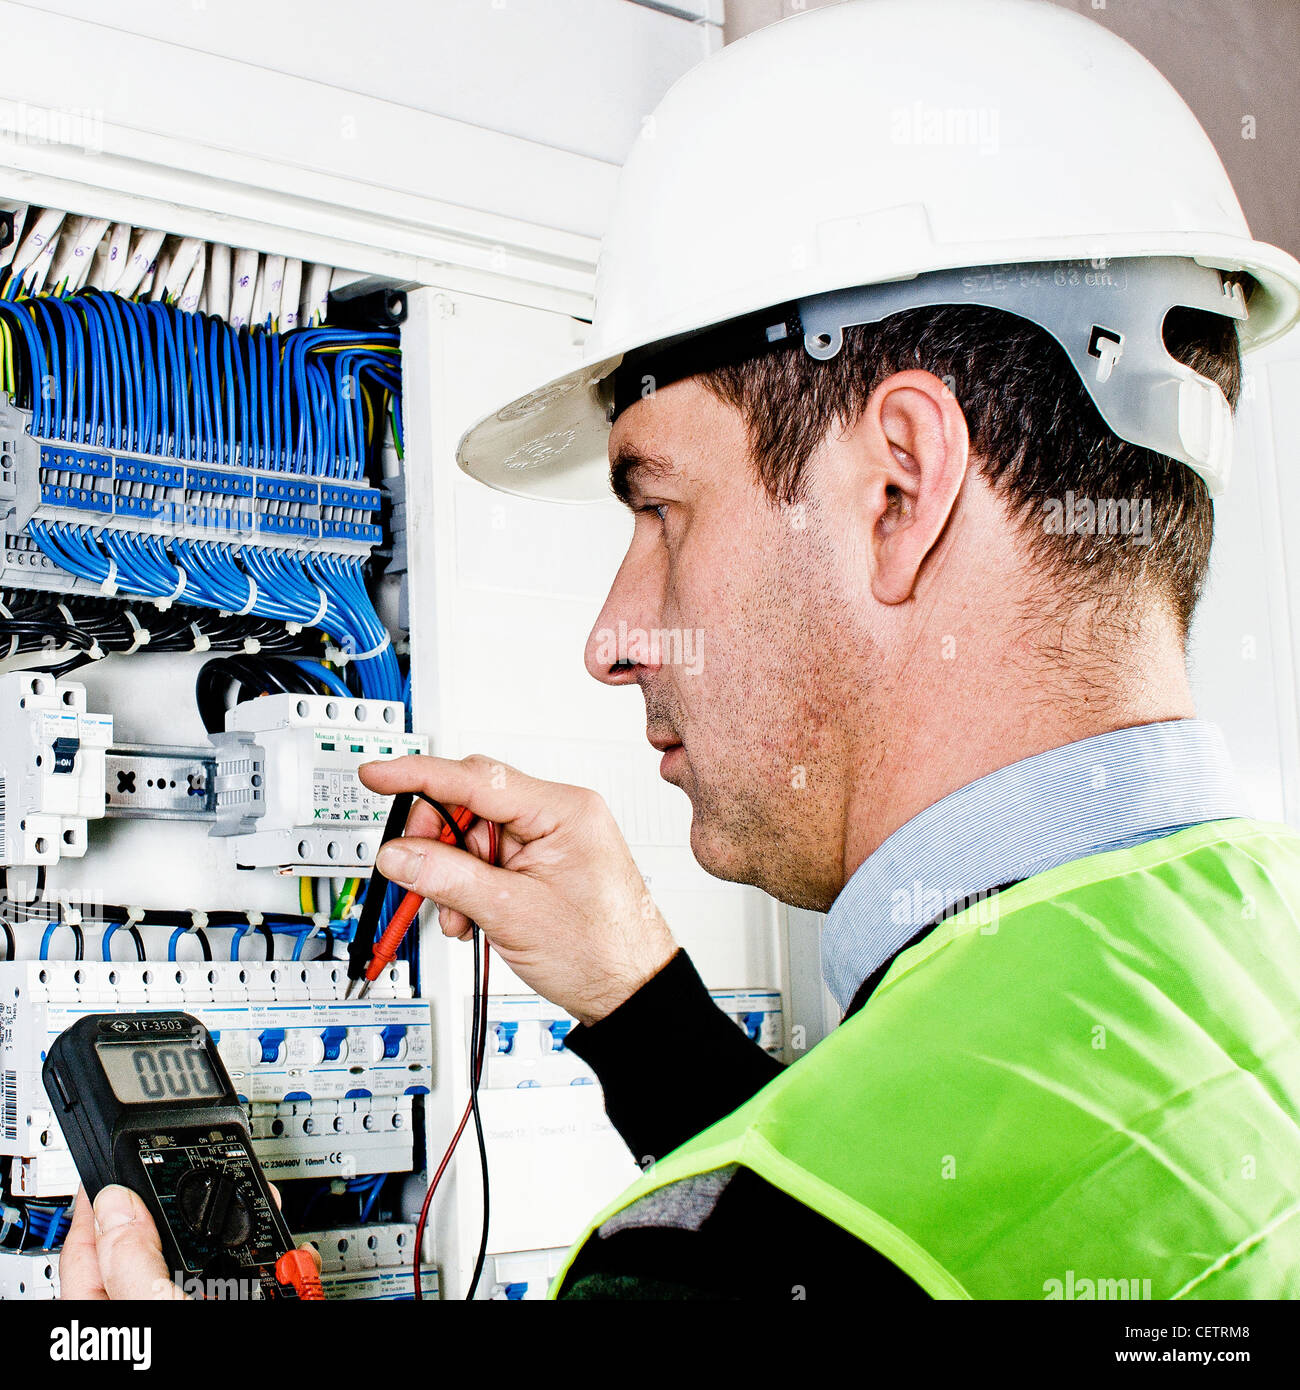 Safety Fuse Stock Photos Images Alamy Box Electrician Checking A Image